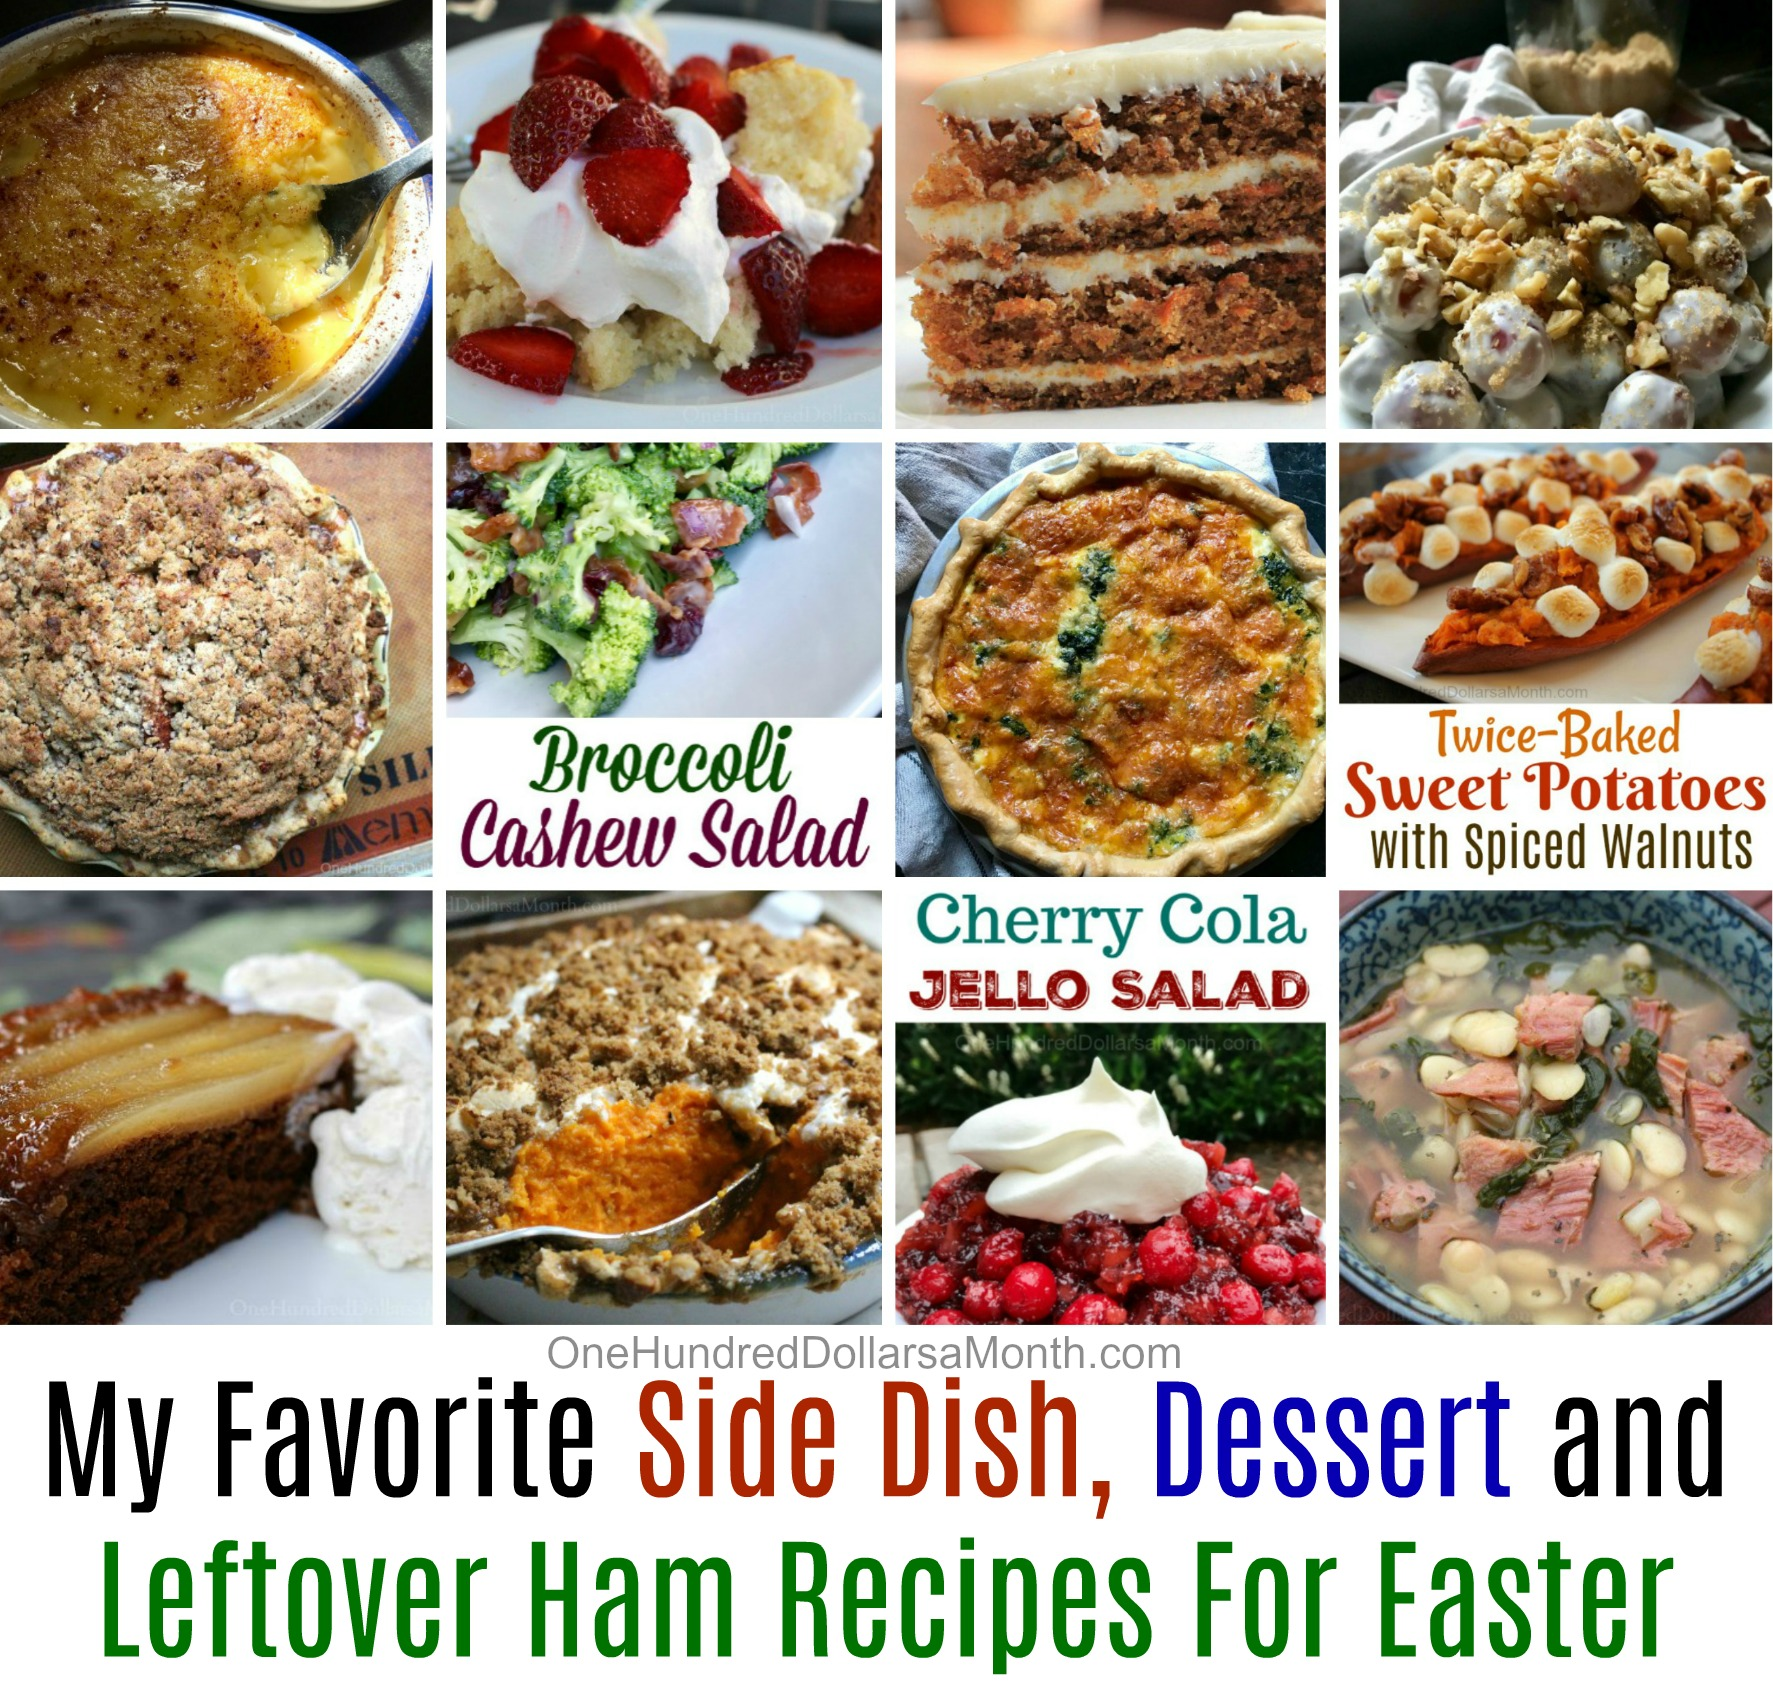 My Favorite Side Dish, Dessert and Leftover Ham Recipes For Easter